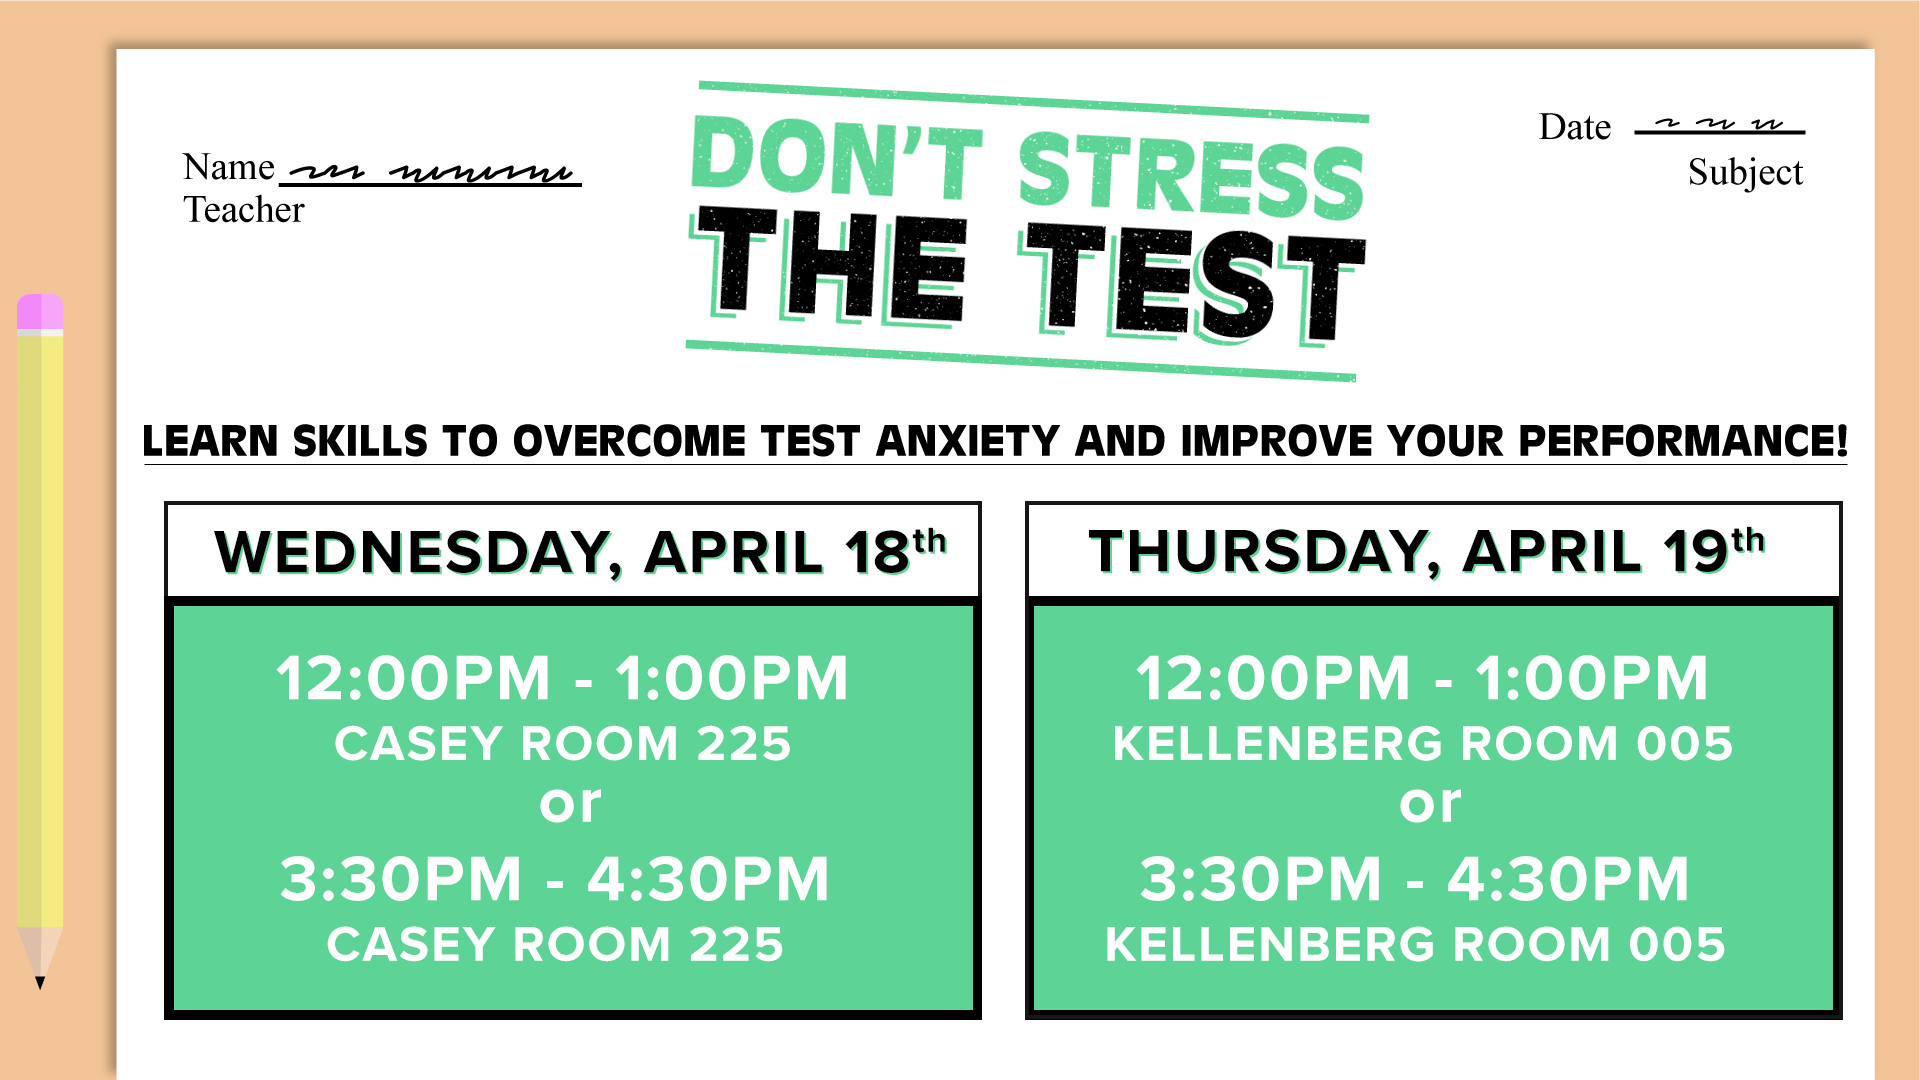 Don't Stress the Test